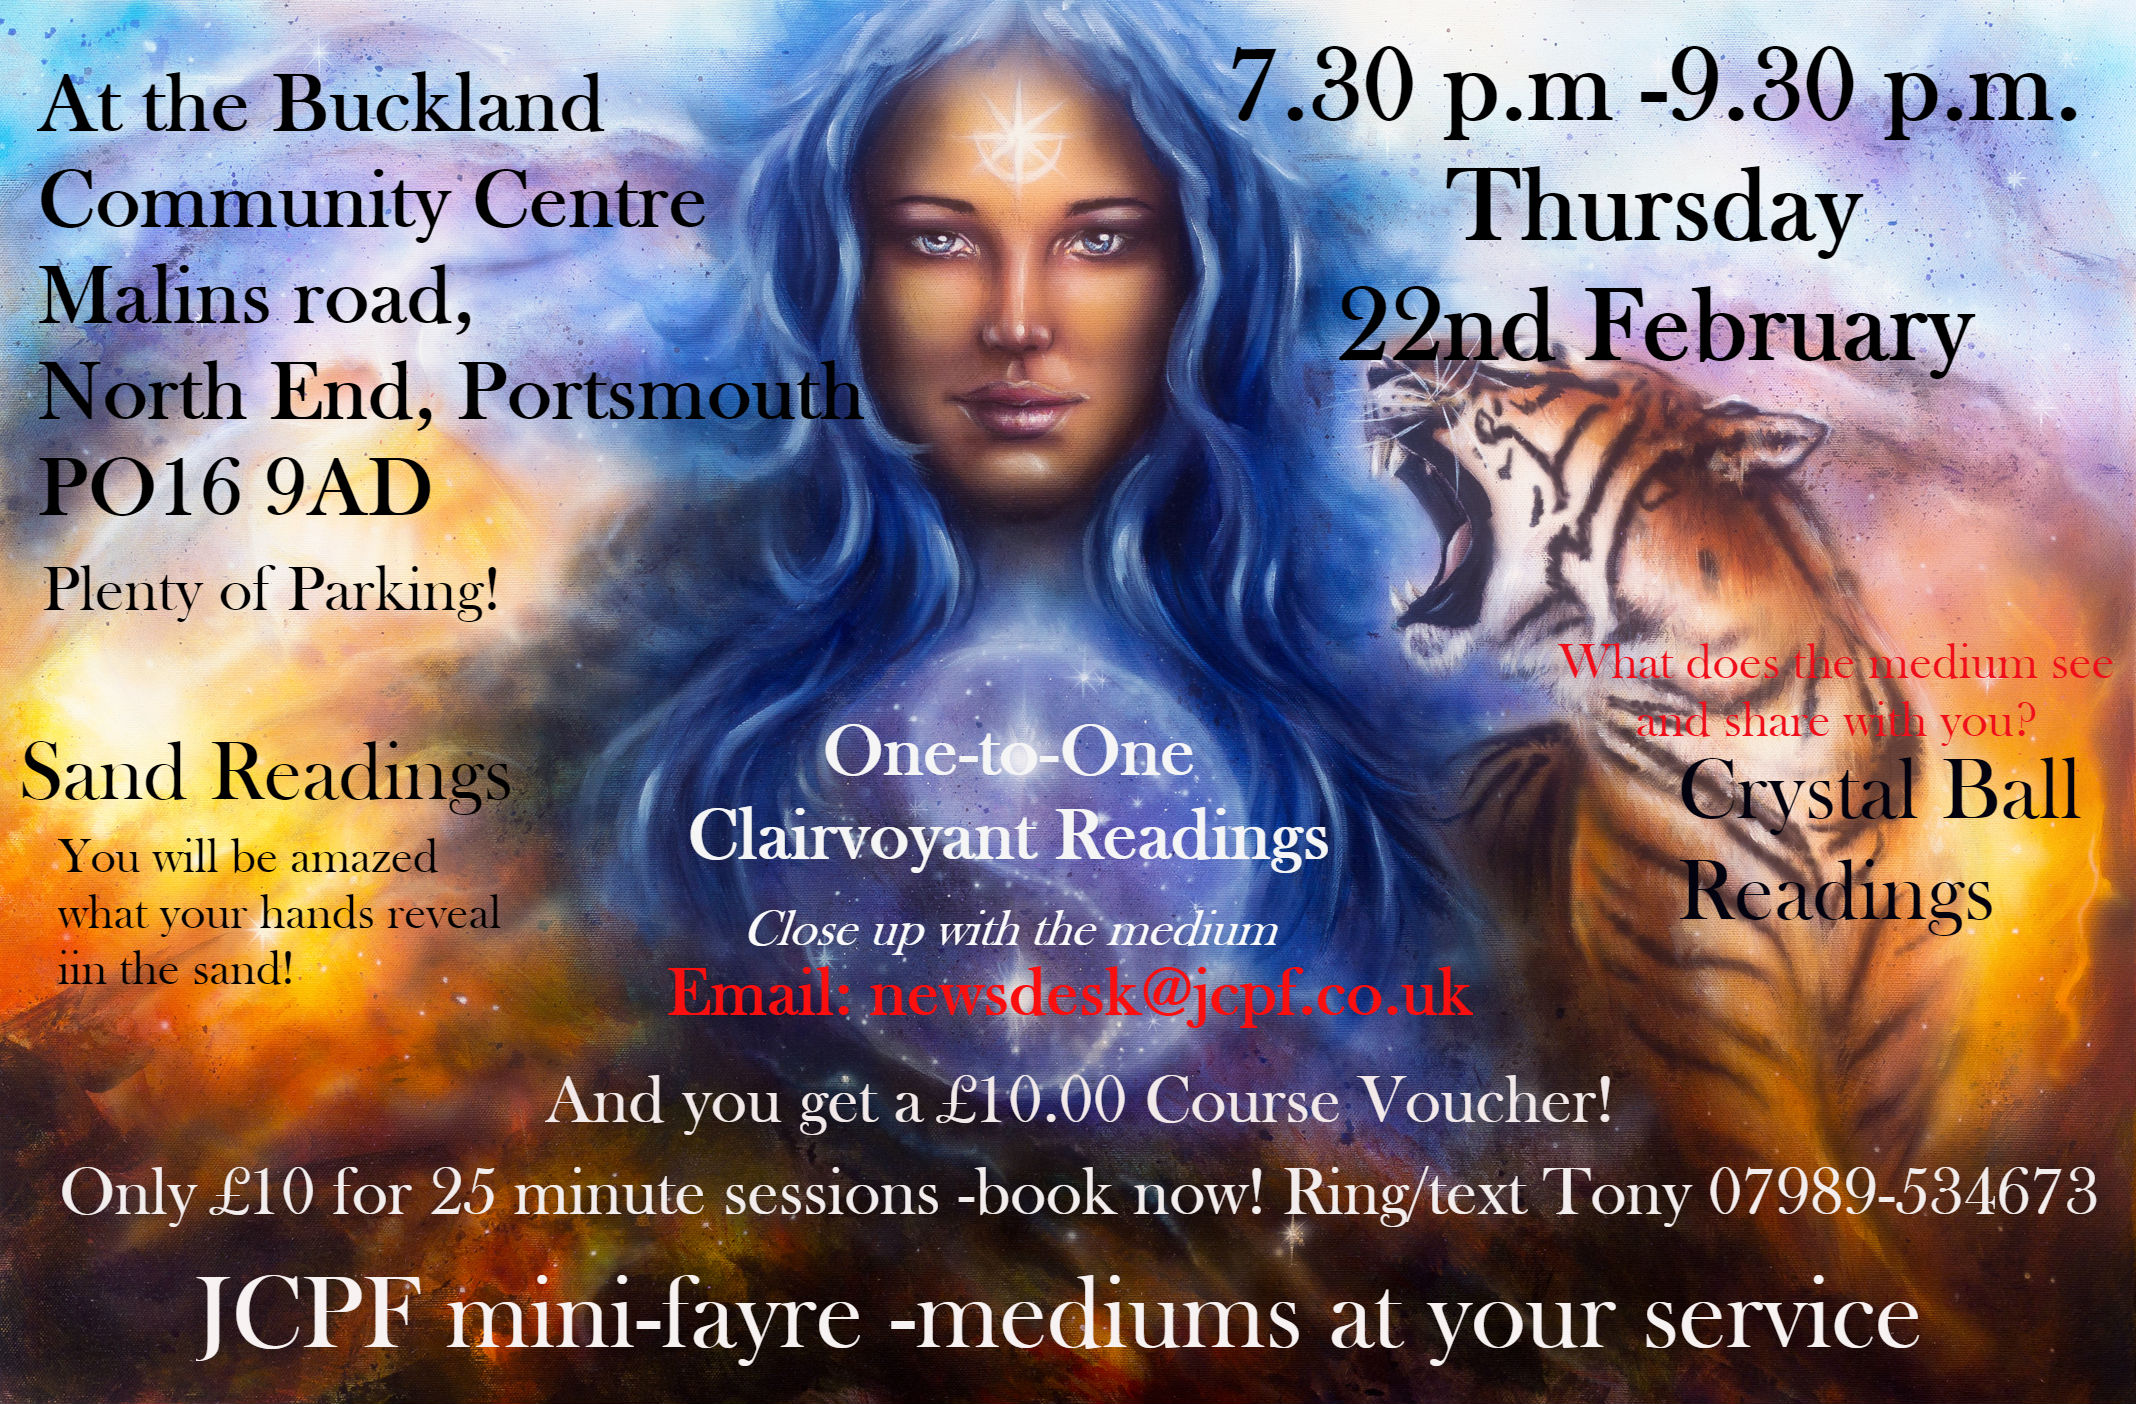 One to One Clairvoyant Readings